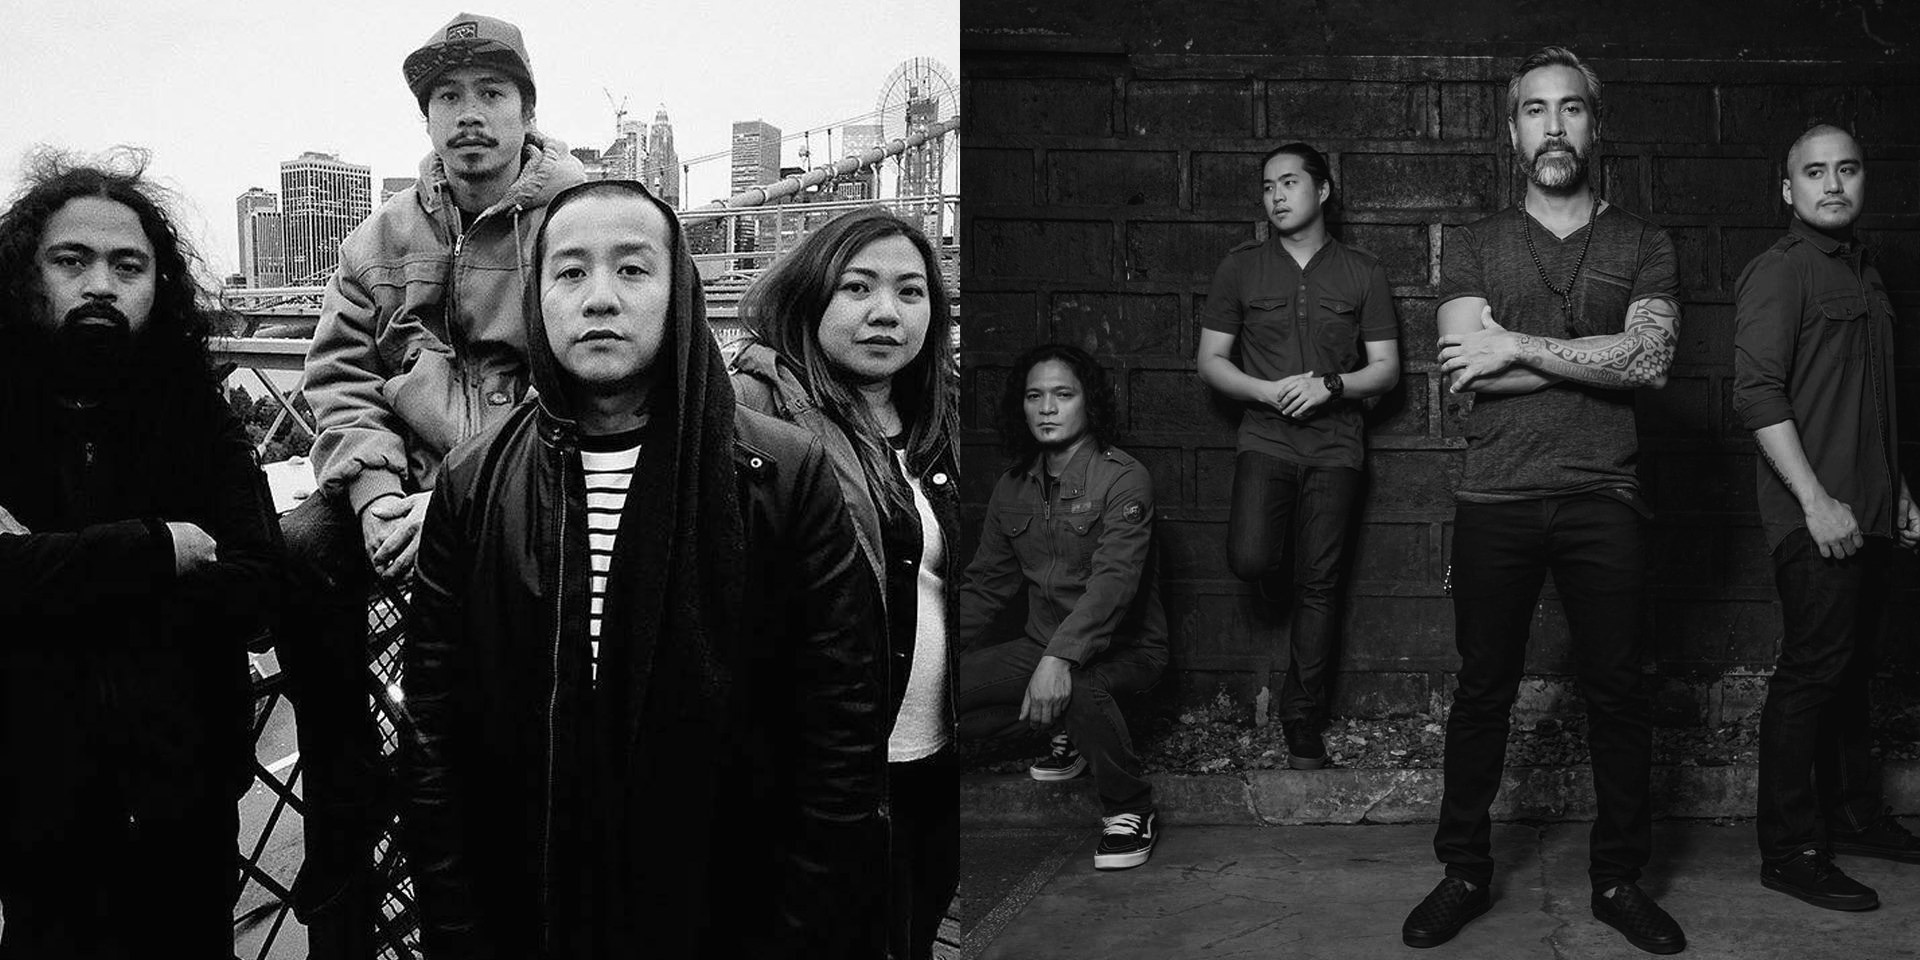 Urbandub and Franco to share the stage this May